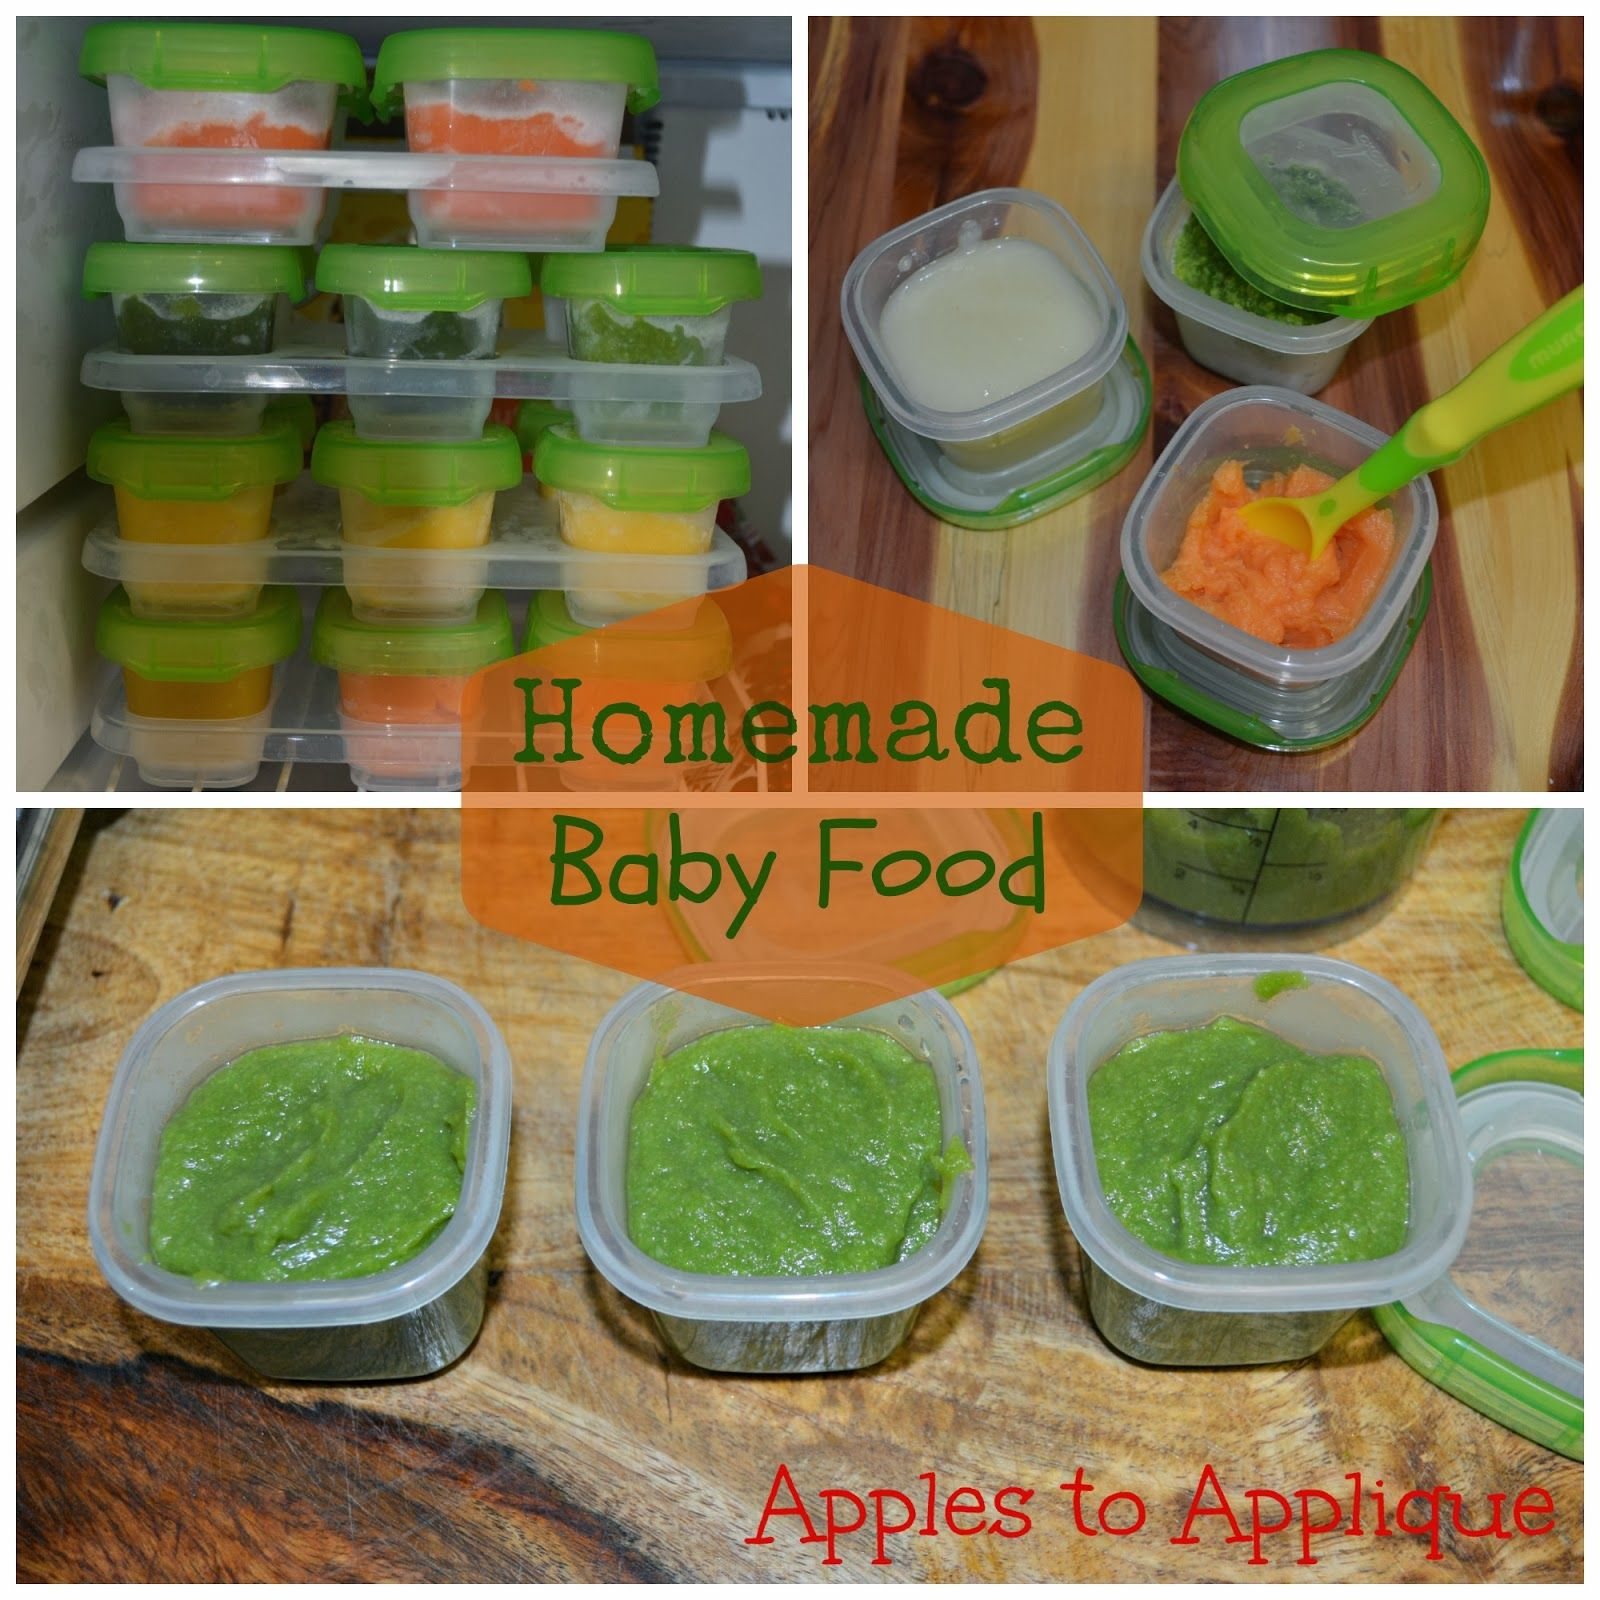 Homemade Baby Food (With images)   Easy baby food recipes ...